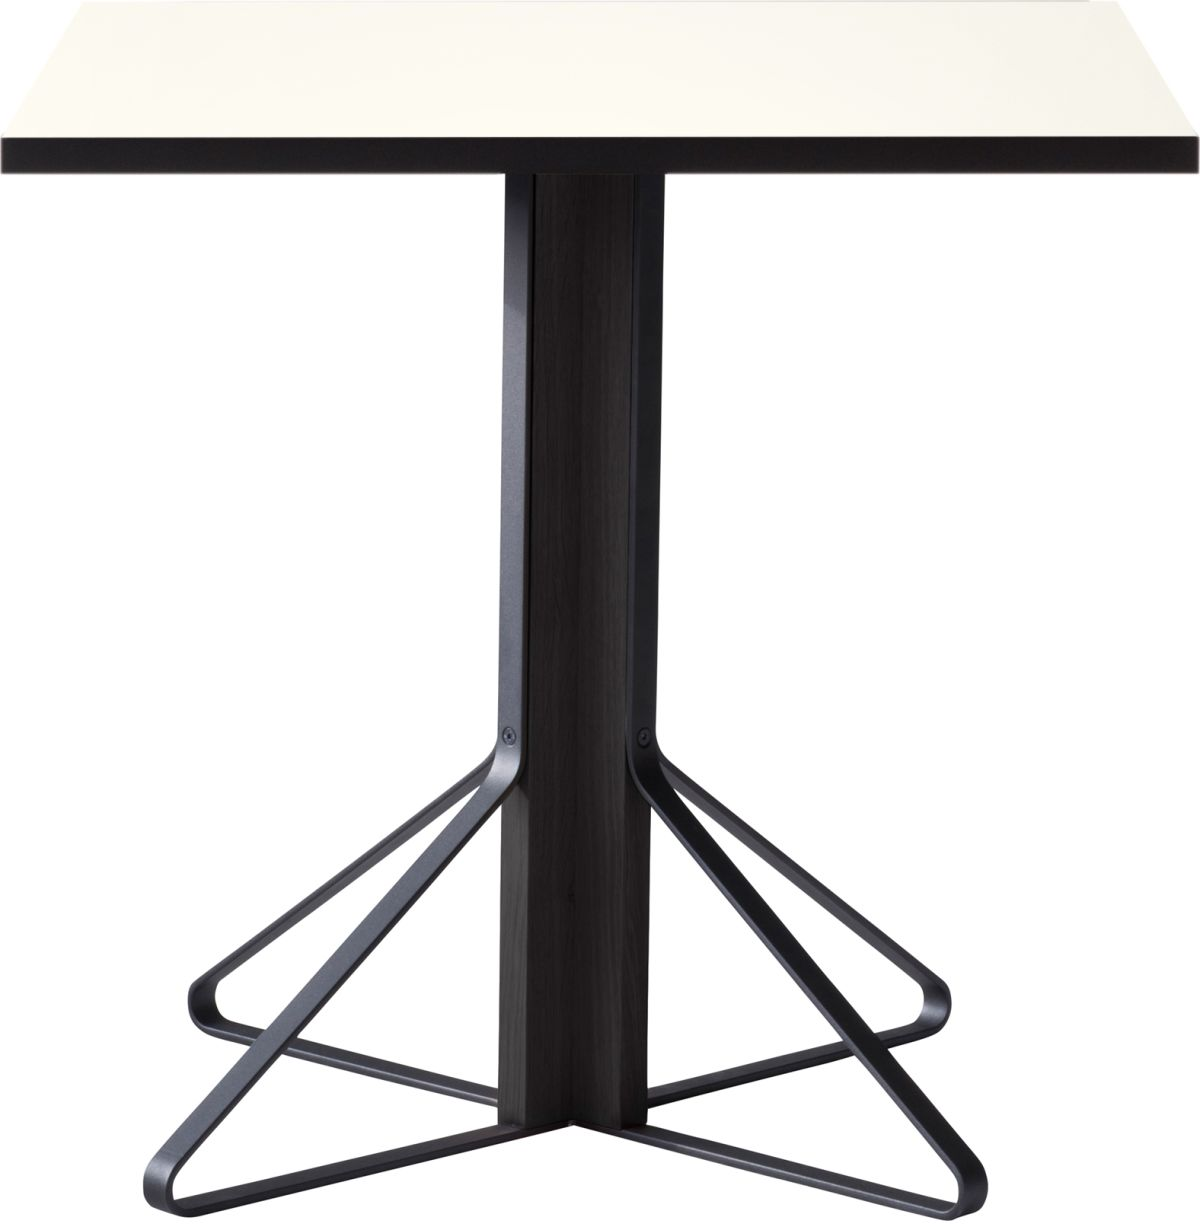 Kaari_Table_square_legs black laquered oak_top white HPL